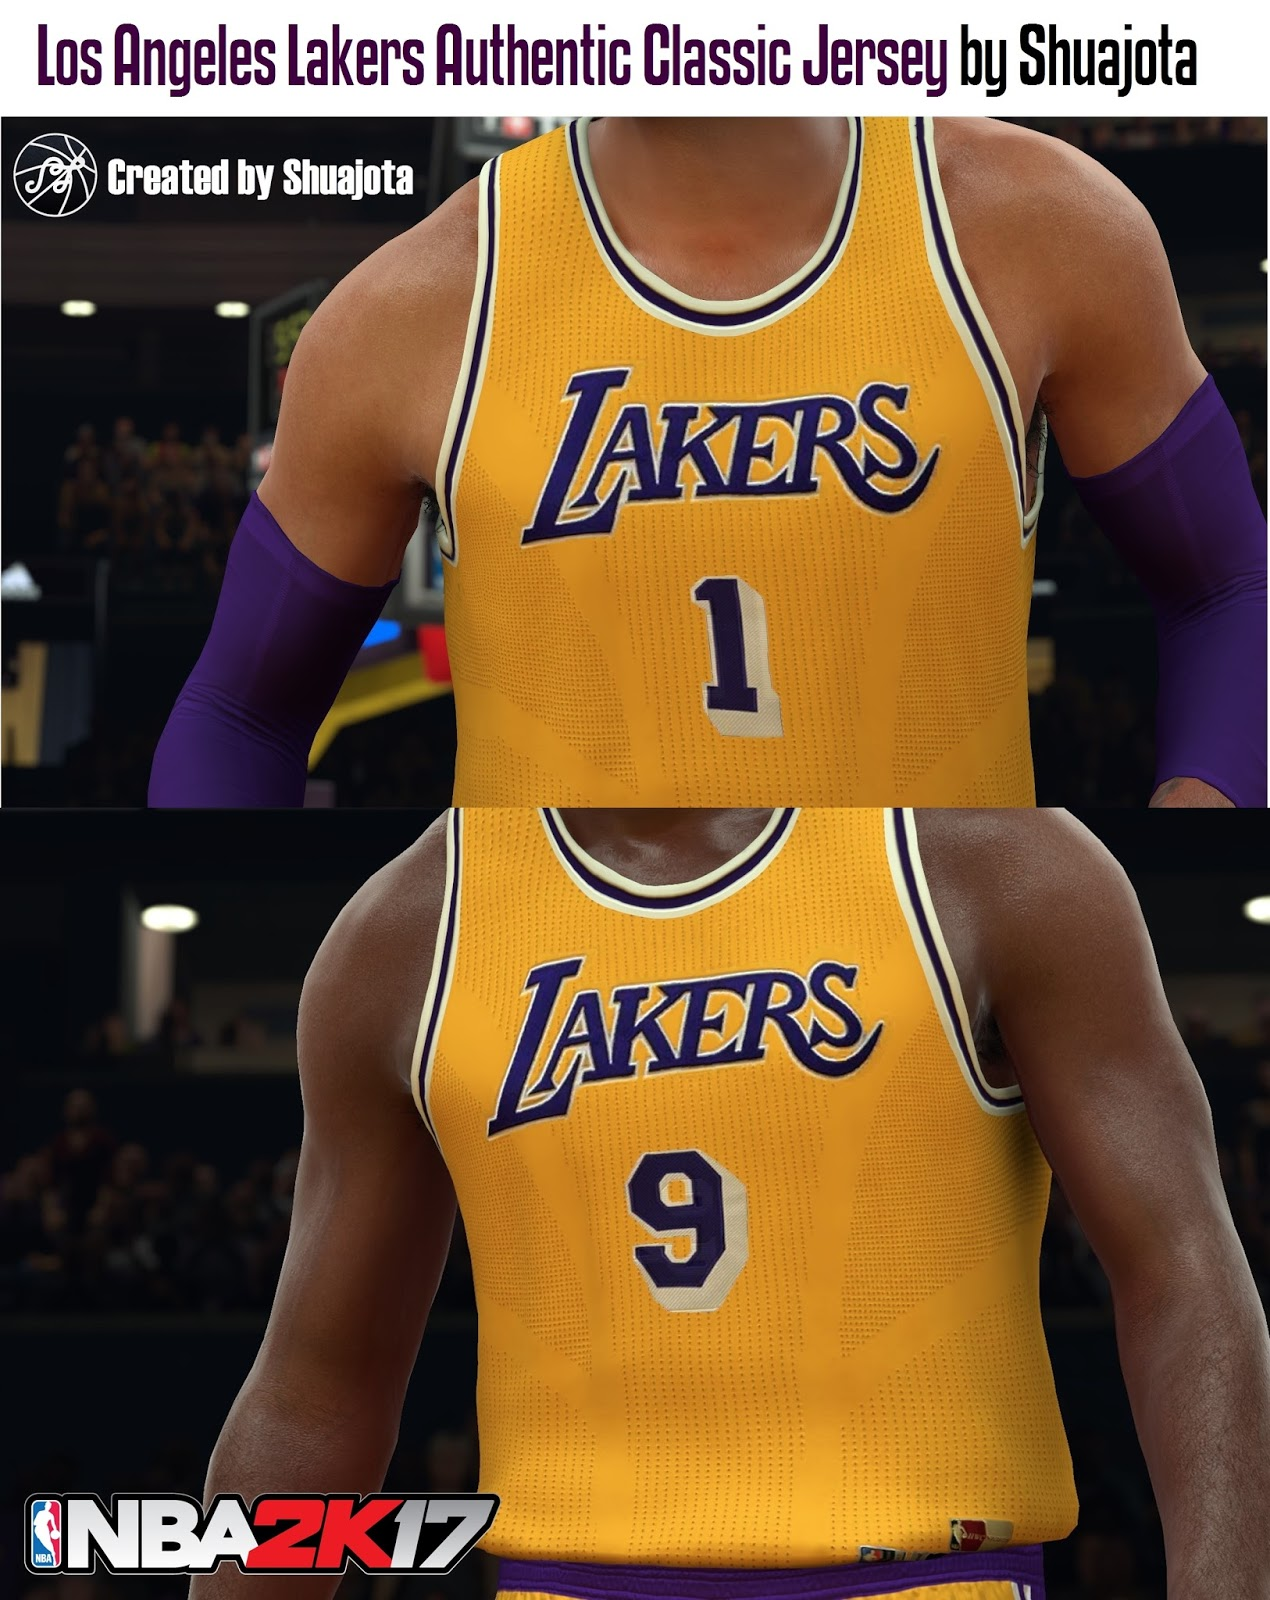 DNA Of Basketball | DNAOBB: NBA 2K17 Los Angeles Lakers Authentic Classic Jersey by Shuajota